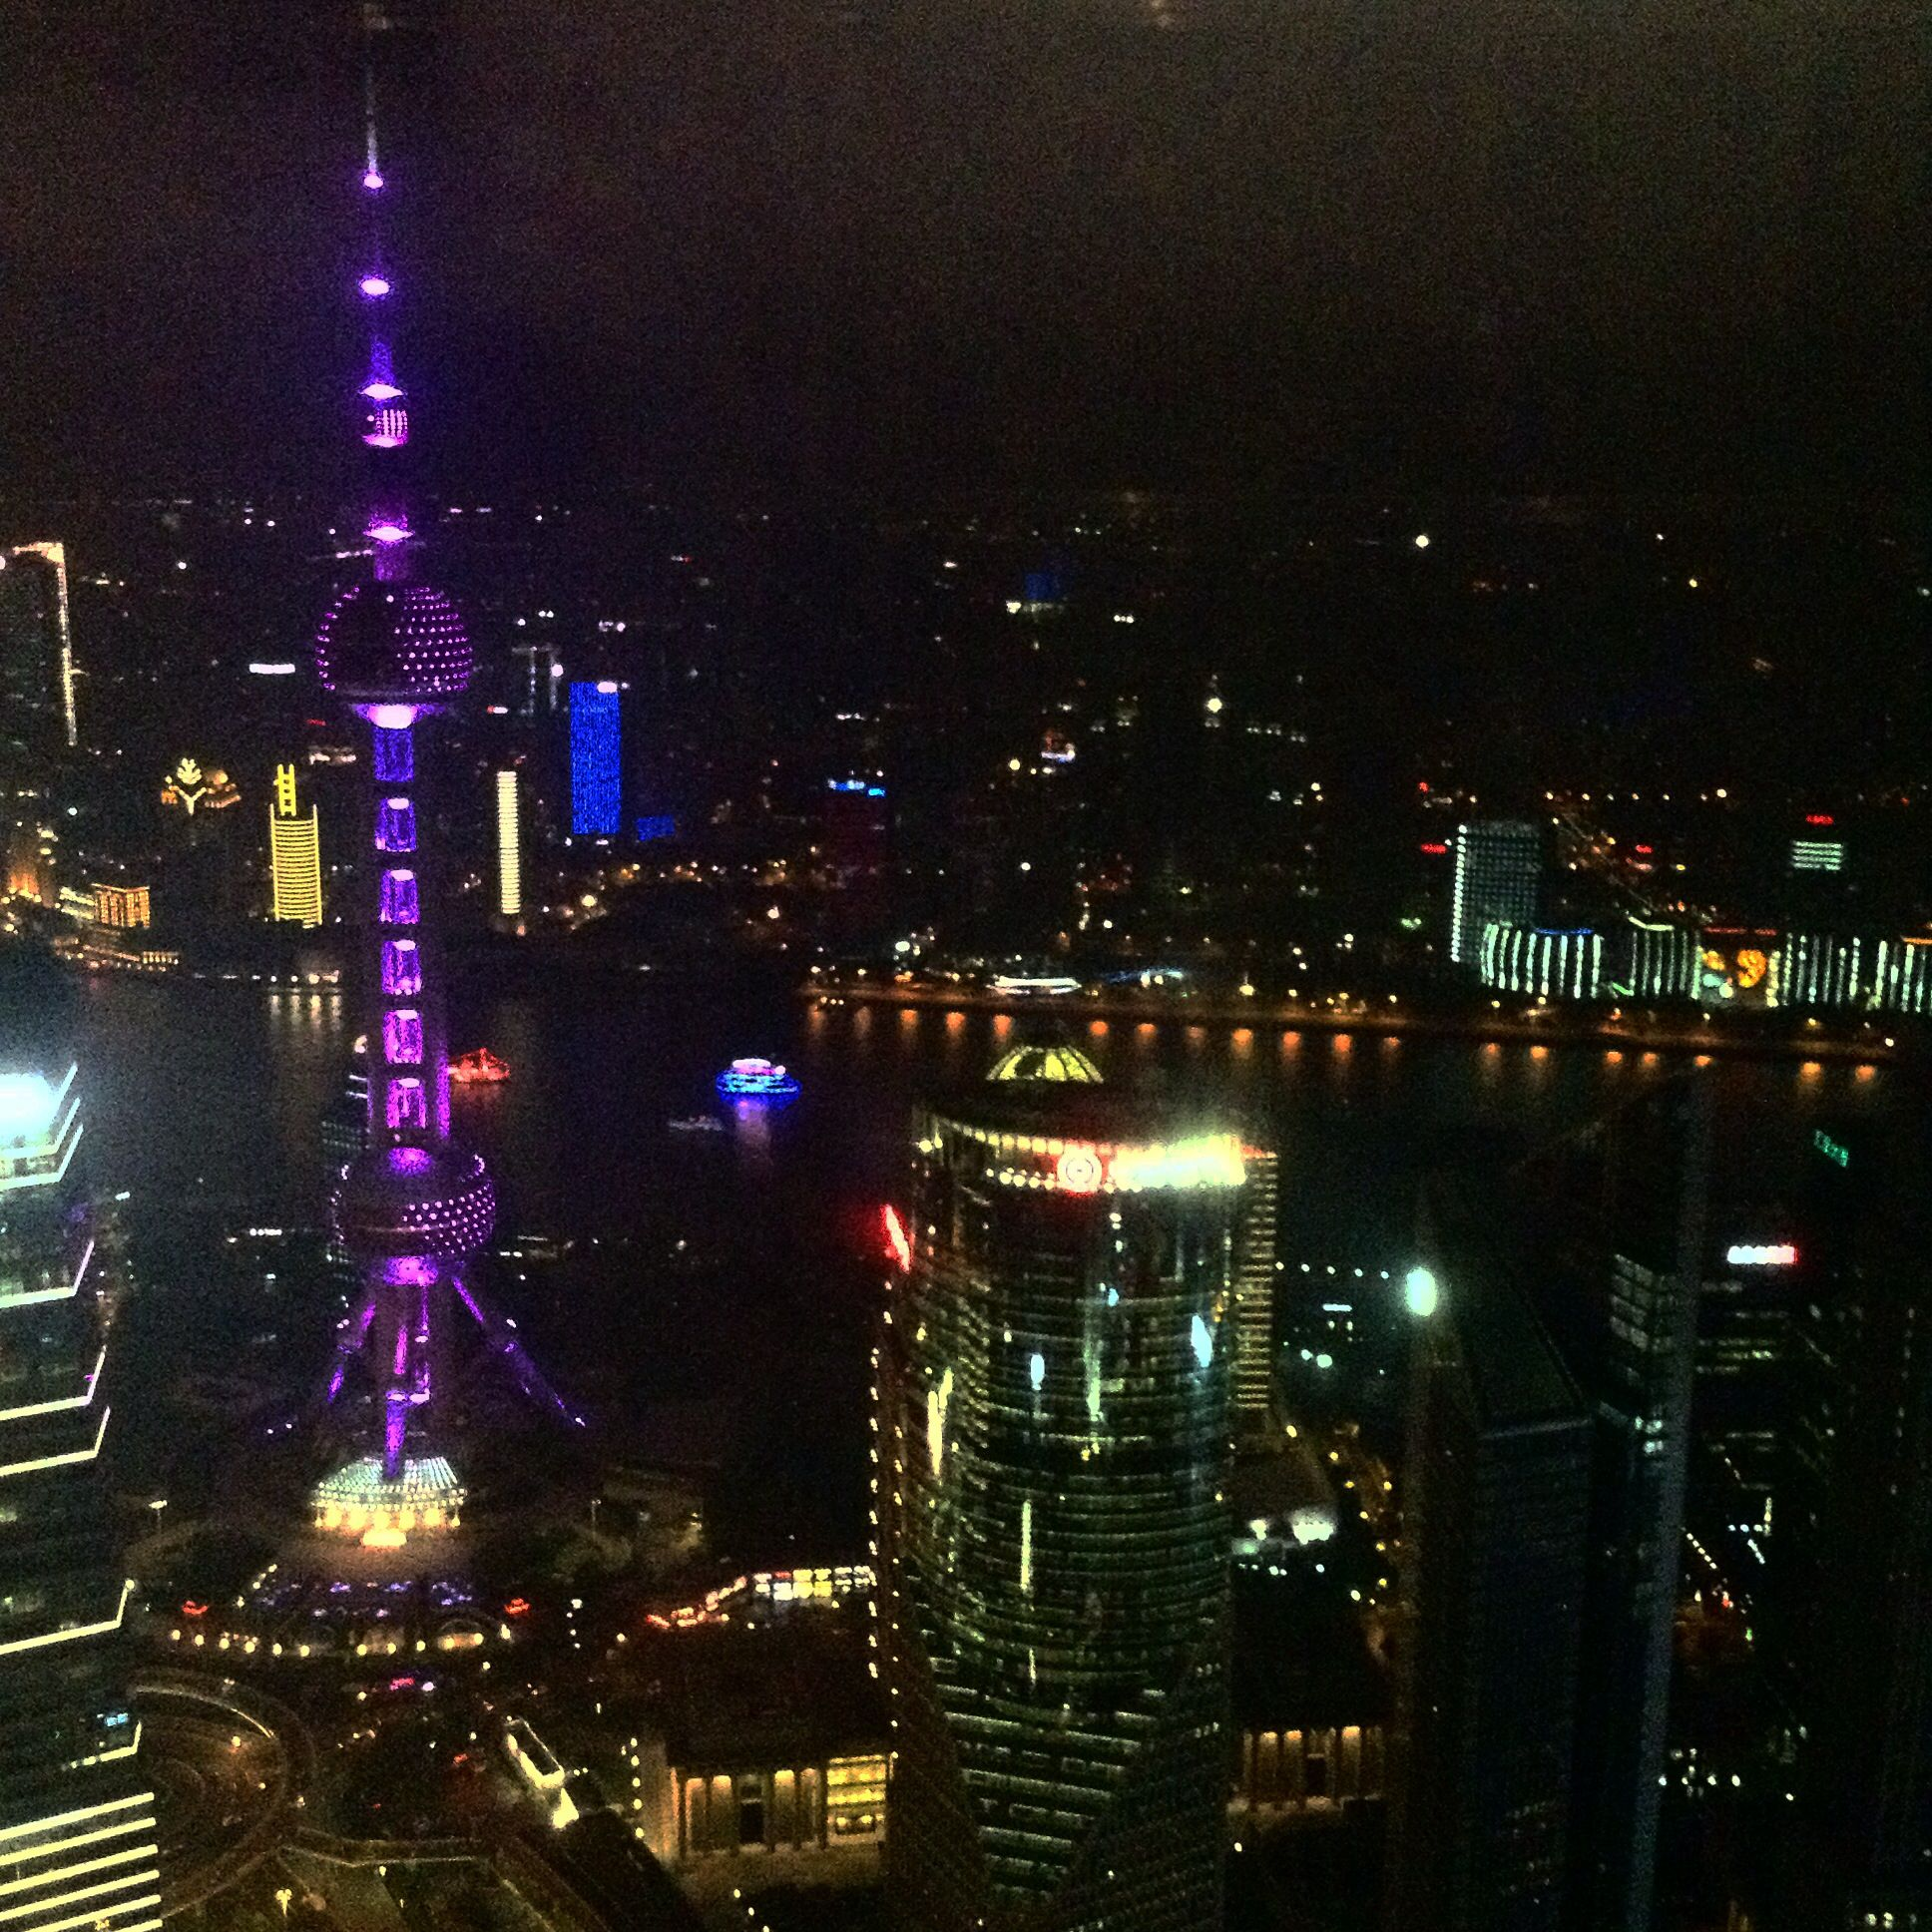 The view of Shanghai by night